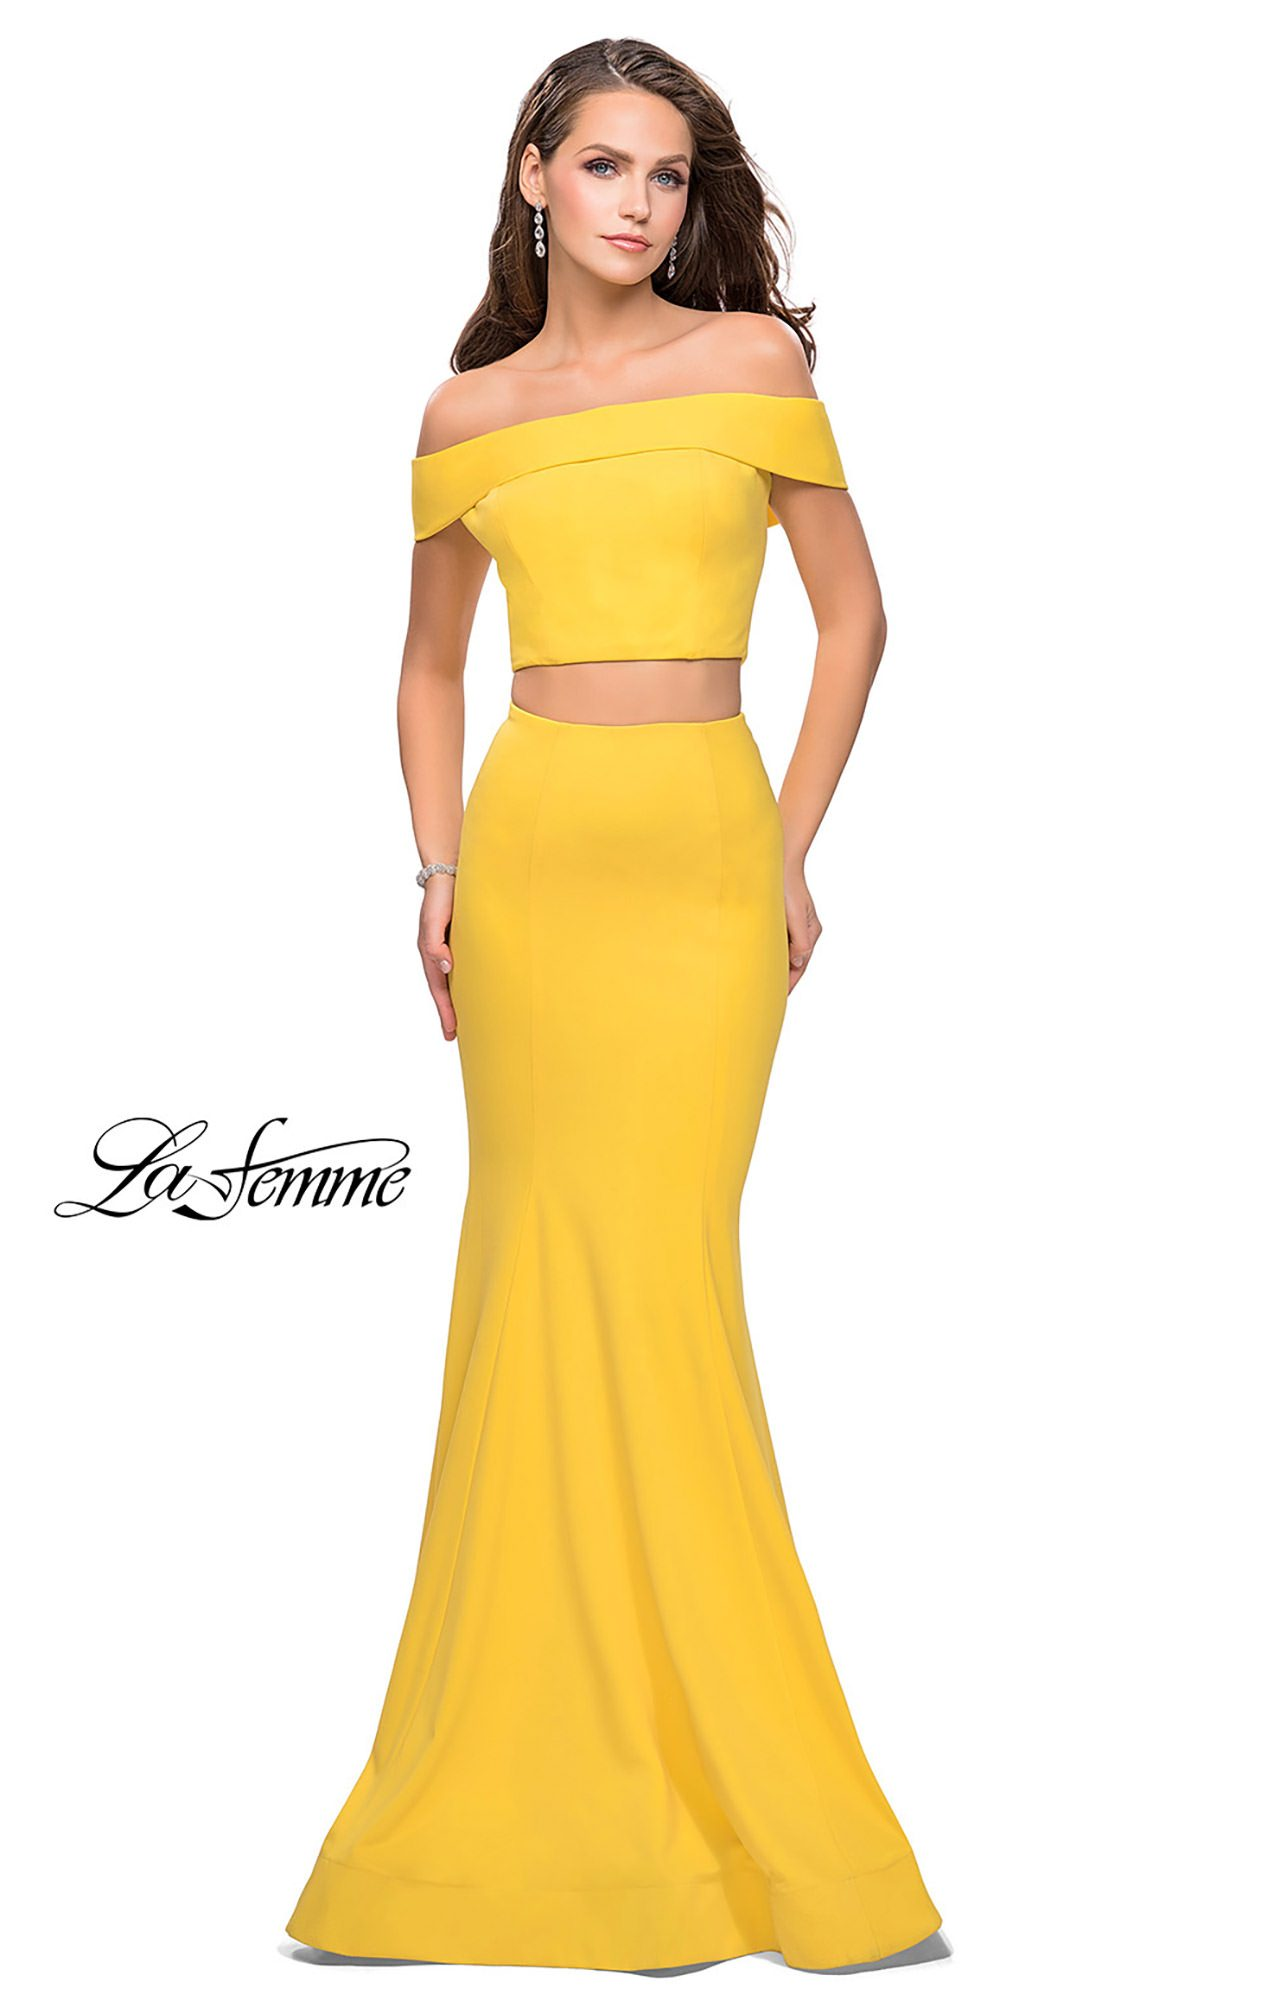 La Femme 25578 Long Fitted 2 Piece Jersey Prom Dress